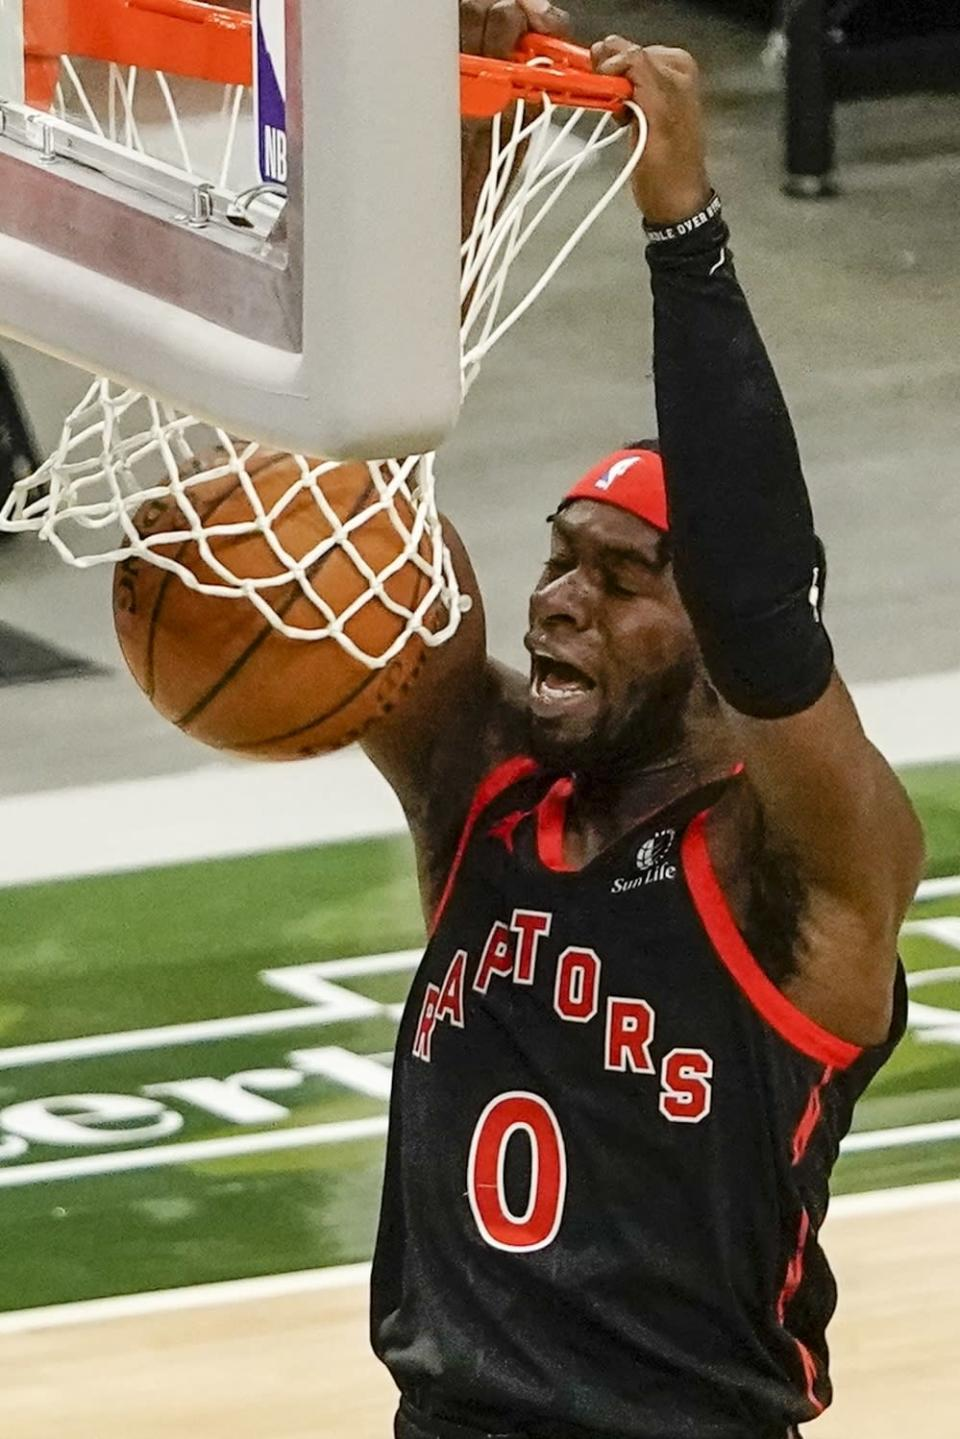 Toronto Raptors' Terence Davis dunks during the first half of an NBA basketball game against the Milwaukee Bucks Tuesday, Feb. 16, 2021, in Milwaukee. (AP Photo/Morry Gash)